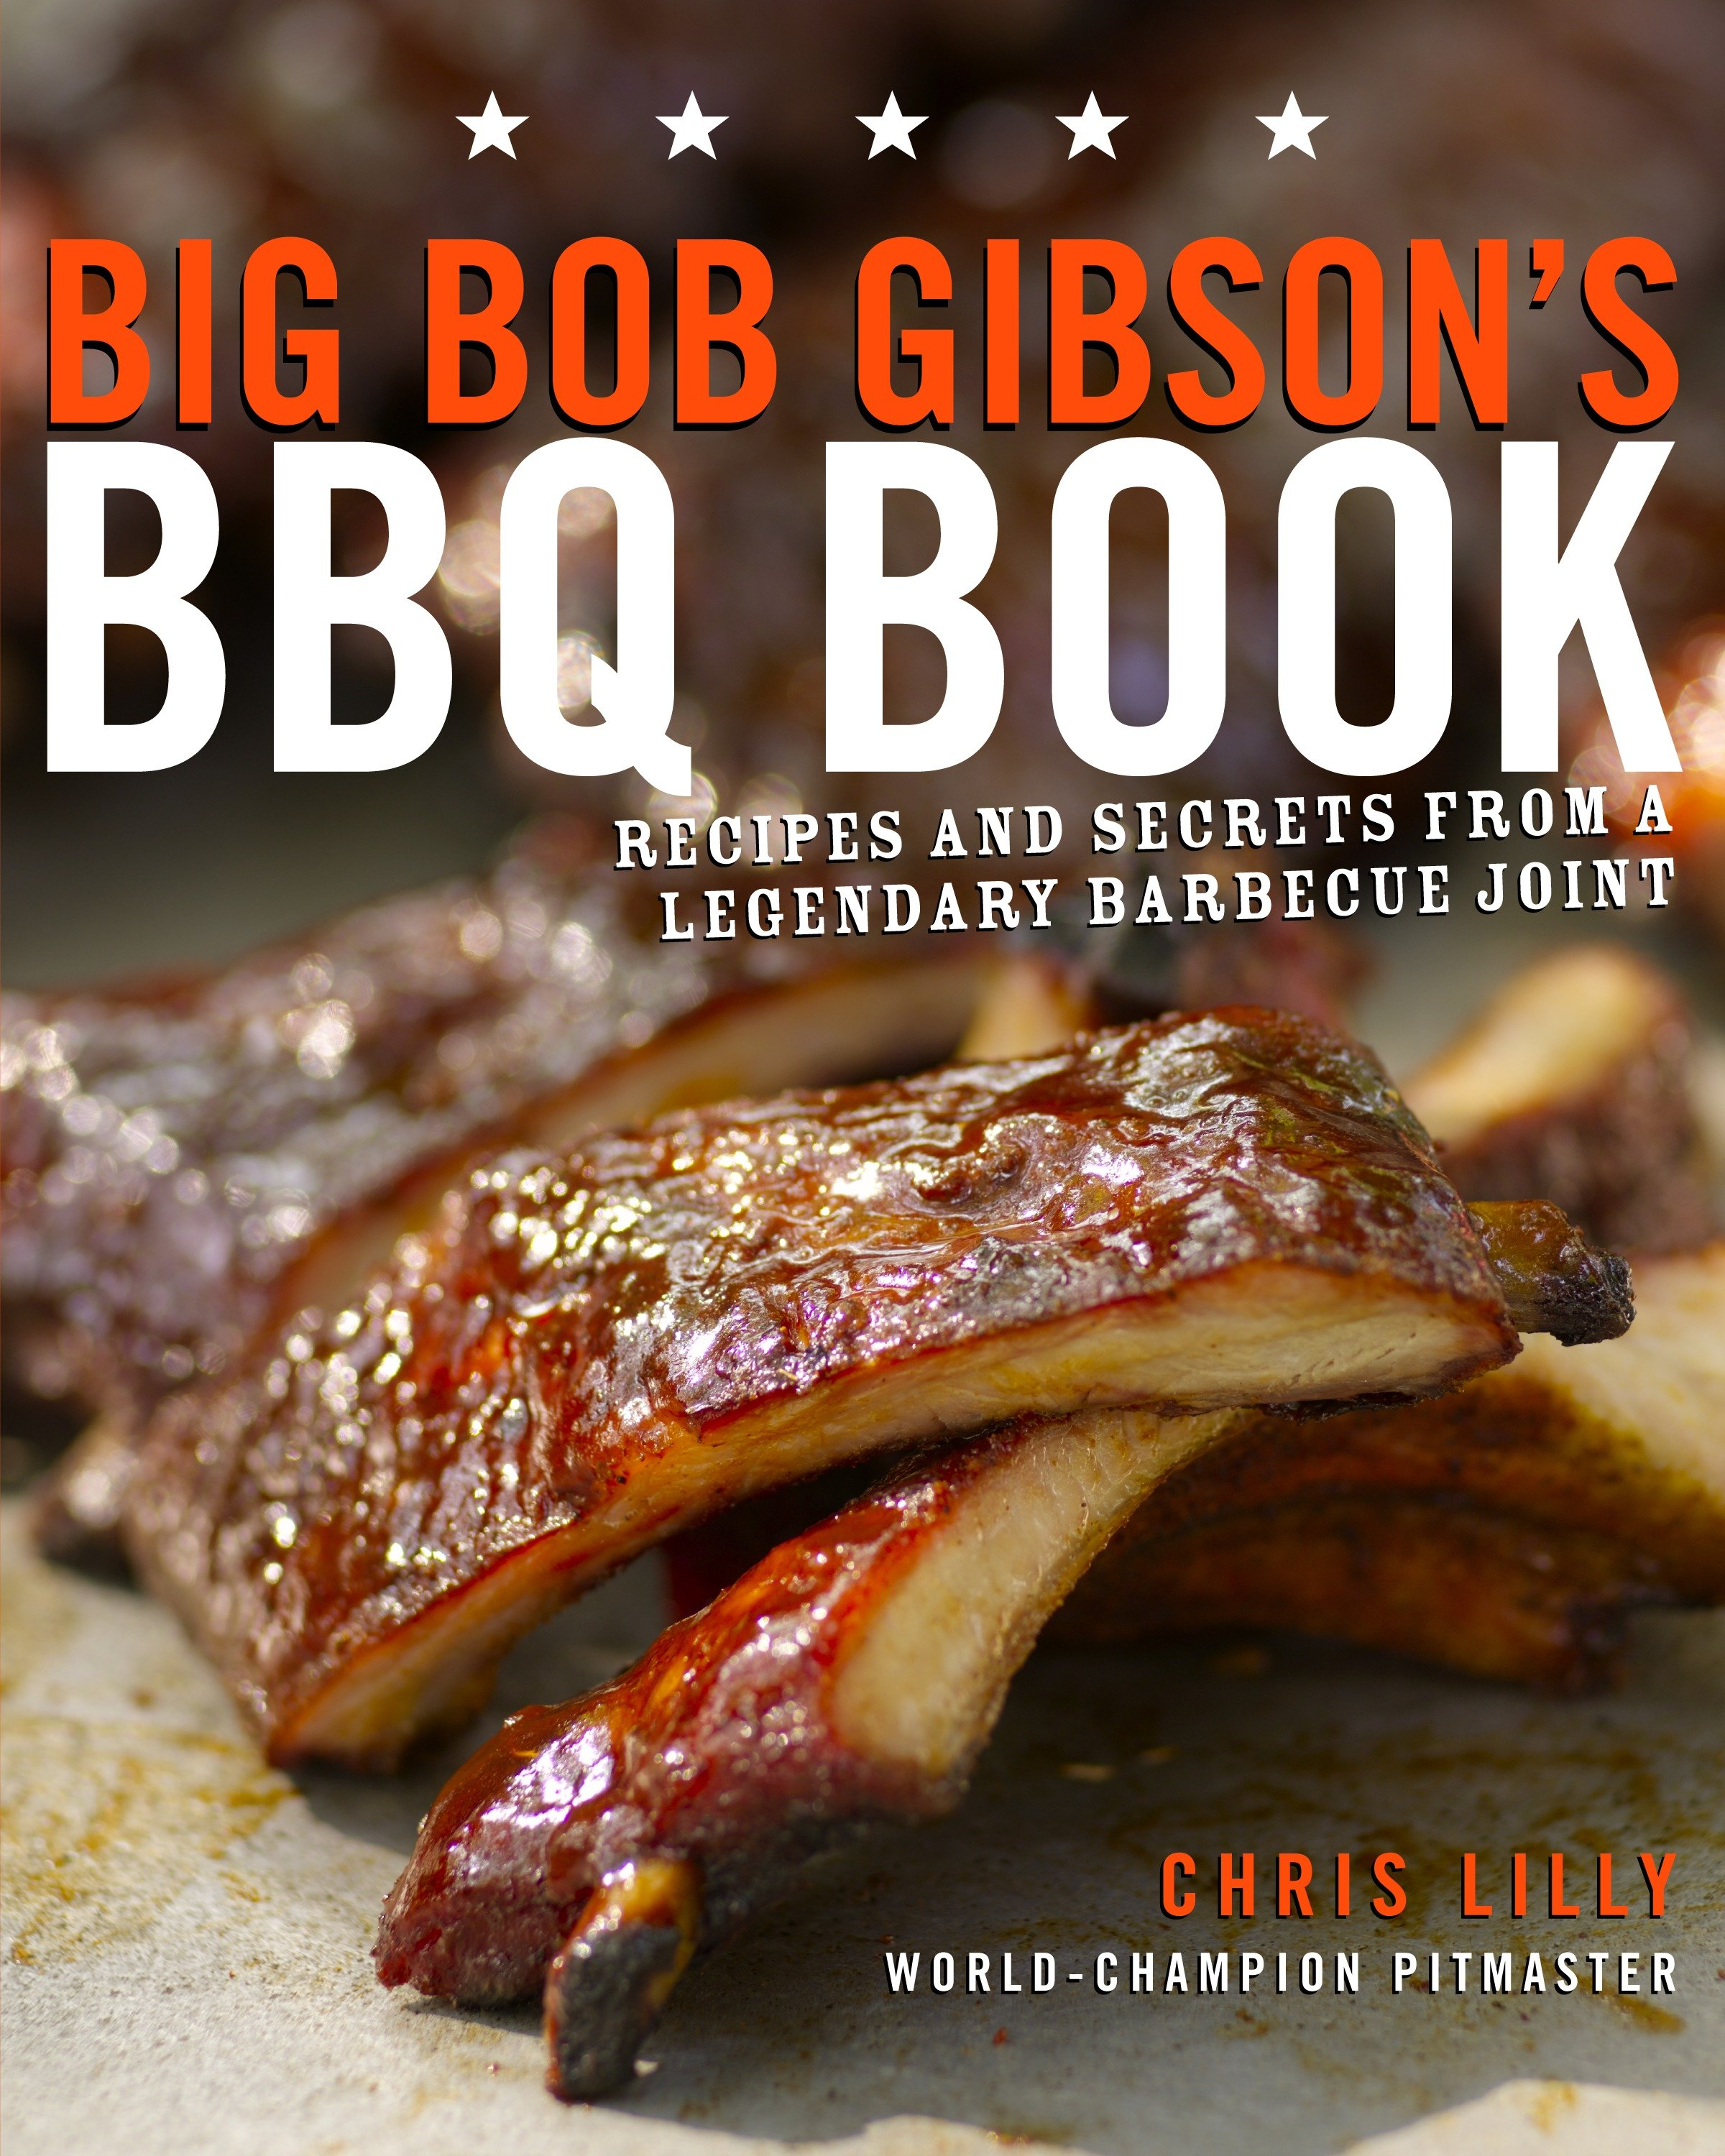 Big Bob Gibsons BBQ Book: Recipes and Secrets from a Legendary Barbecue Joint